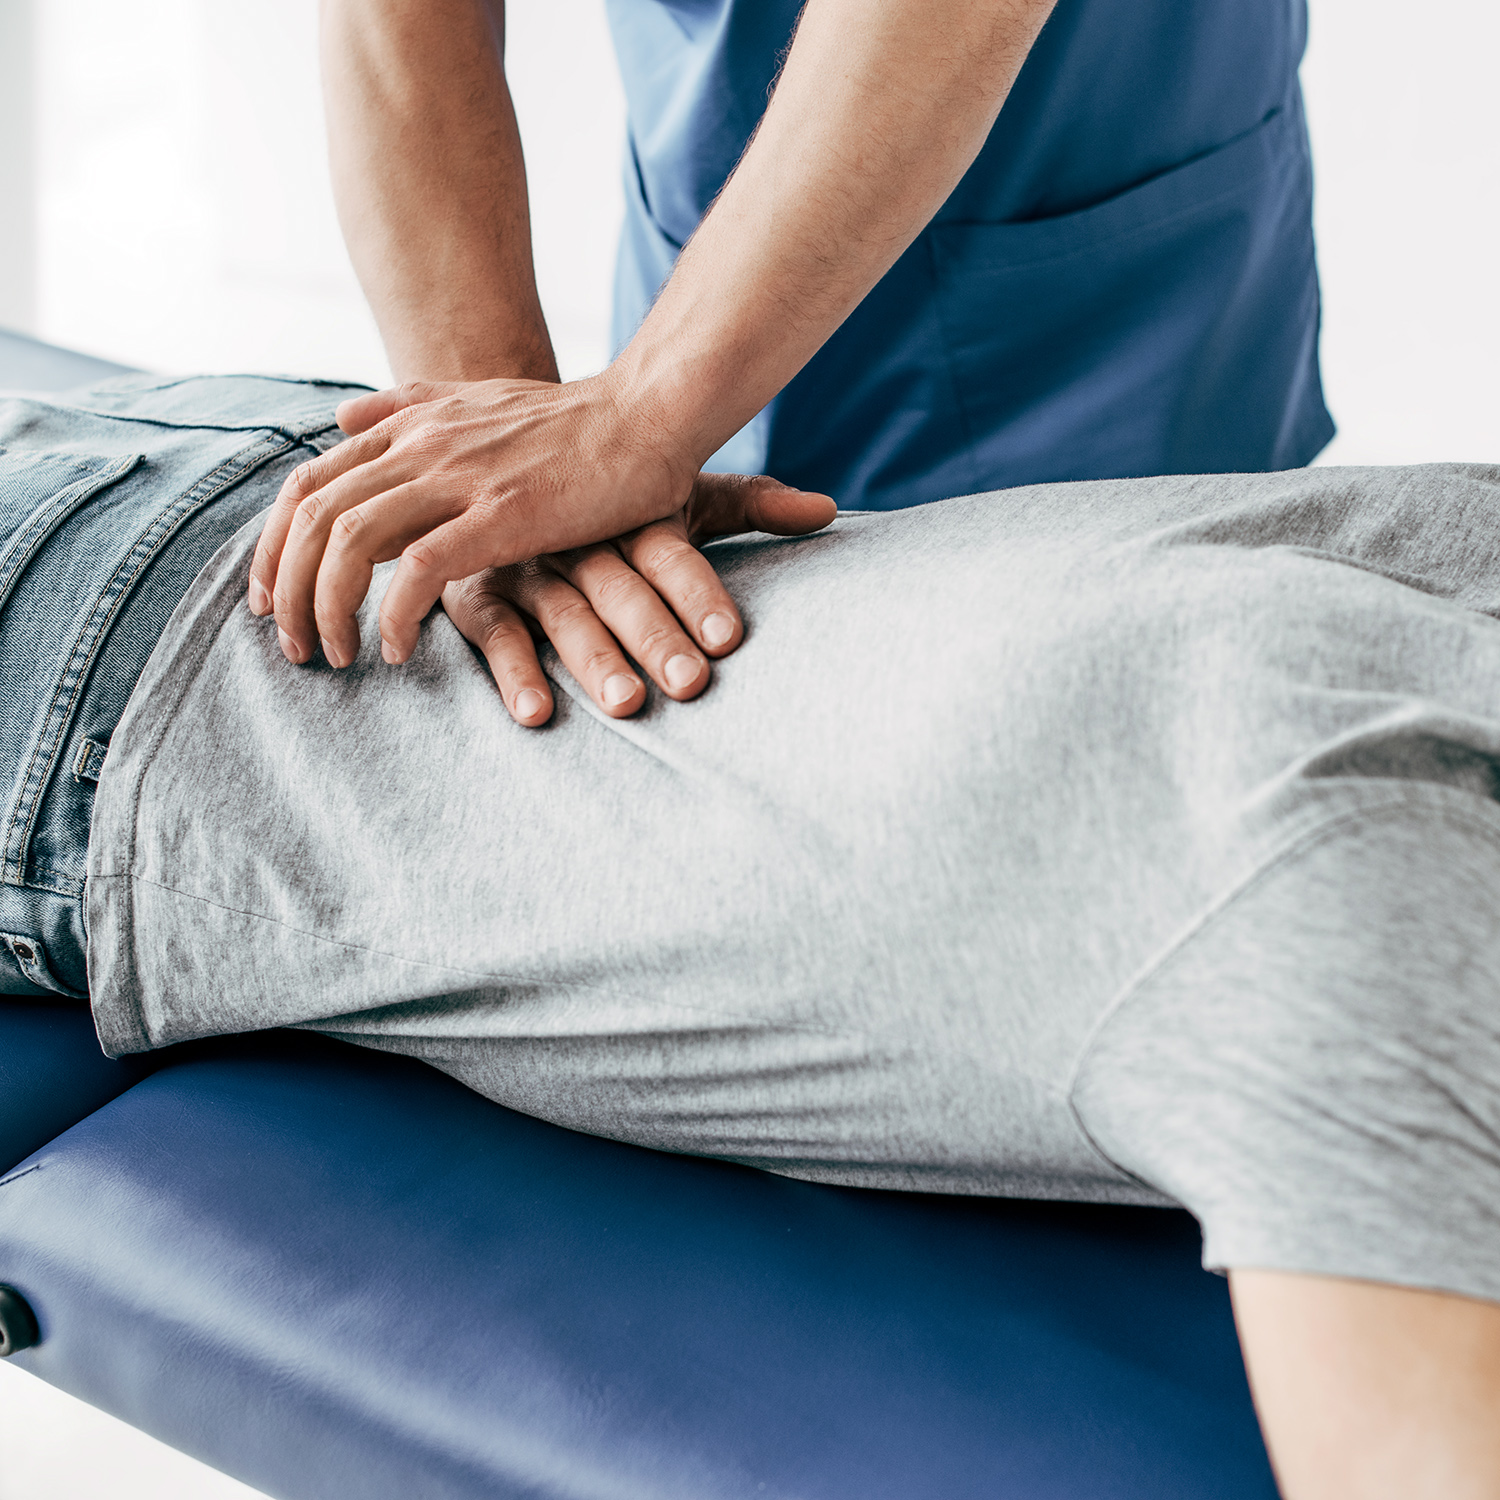 Spinal Manipulation: What You Need To Know | NCCIH